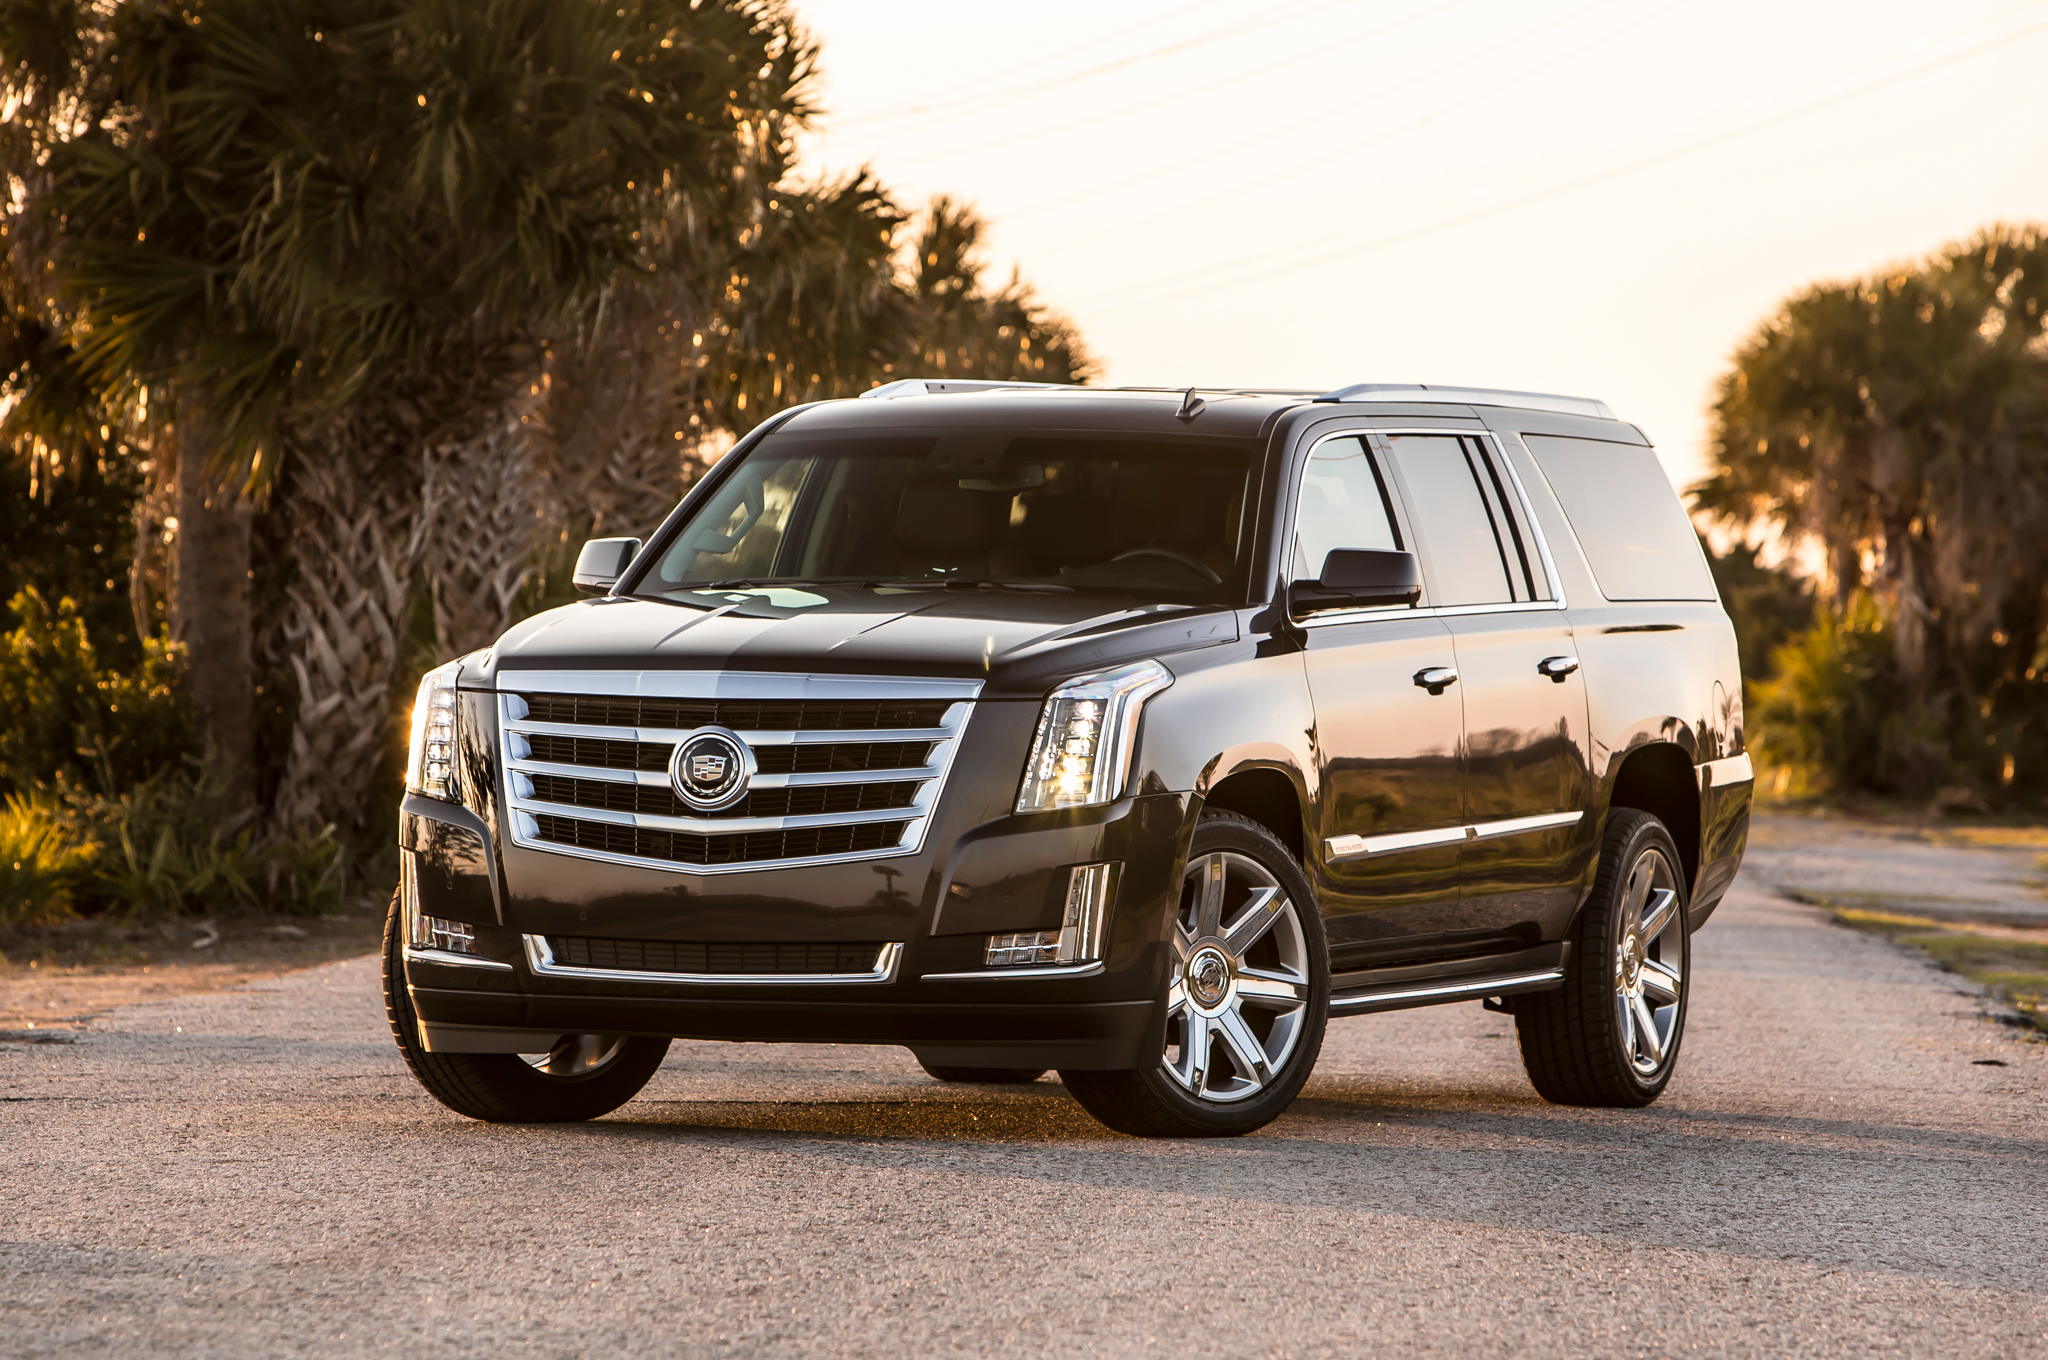 review cadillac date design escalade release engine price